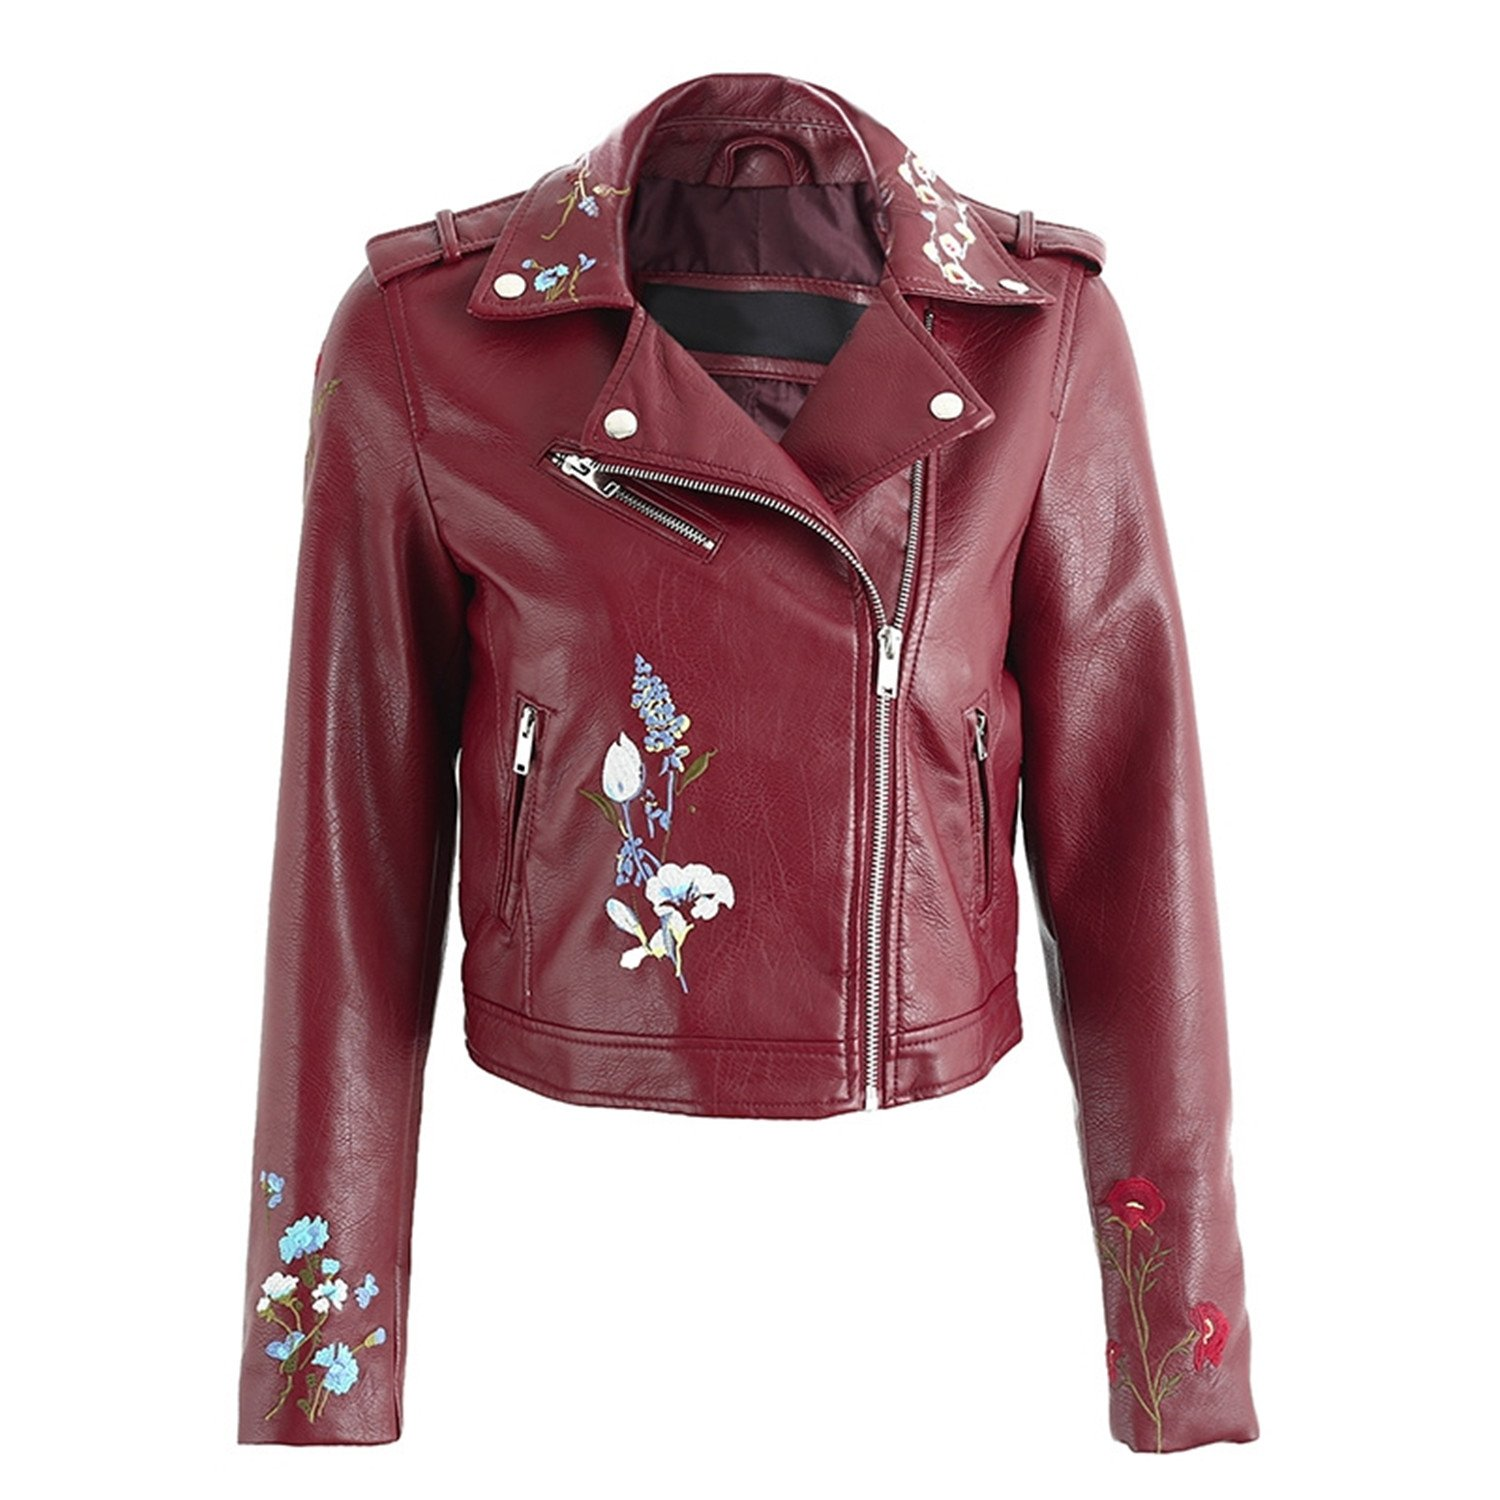 87bac73b5c Marvin Cook Embroidery Faux Leather Coat Motorcycle Zipper Wine Red Leather  Jacket Women Fashion Cool Outerwear Winter Jacket at Amazon Women's Coats  Shop